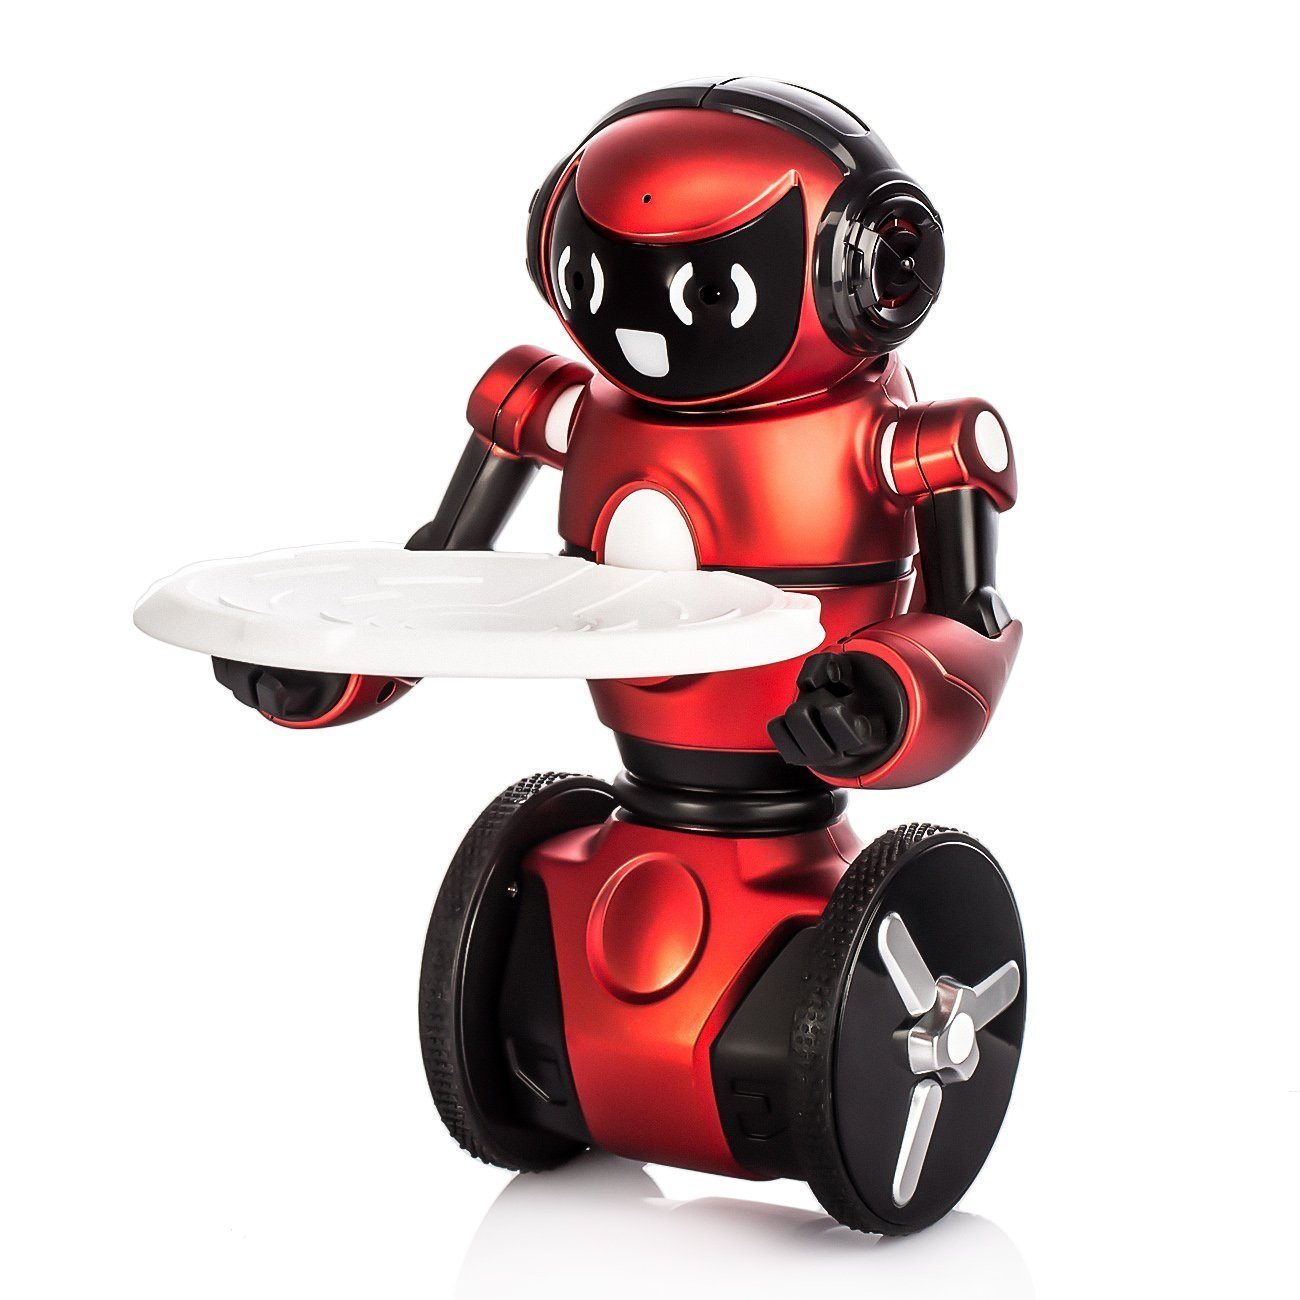 WLToys Intelligent Two Wheels Balance RC Robot Toy with Dance Music Avoidance Human-computer Interaction Mode for Children Kids as a Gift *Colors May Vary.